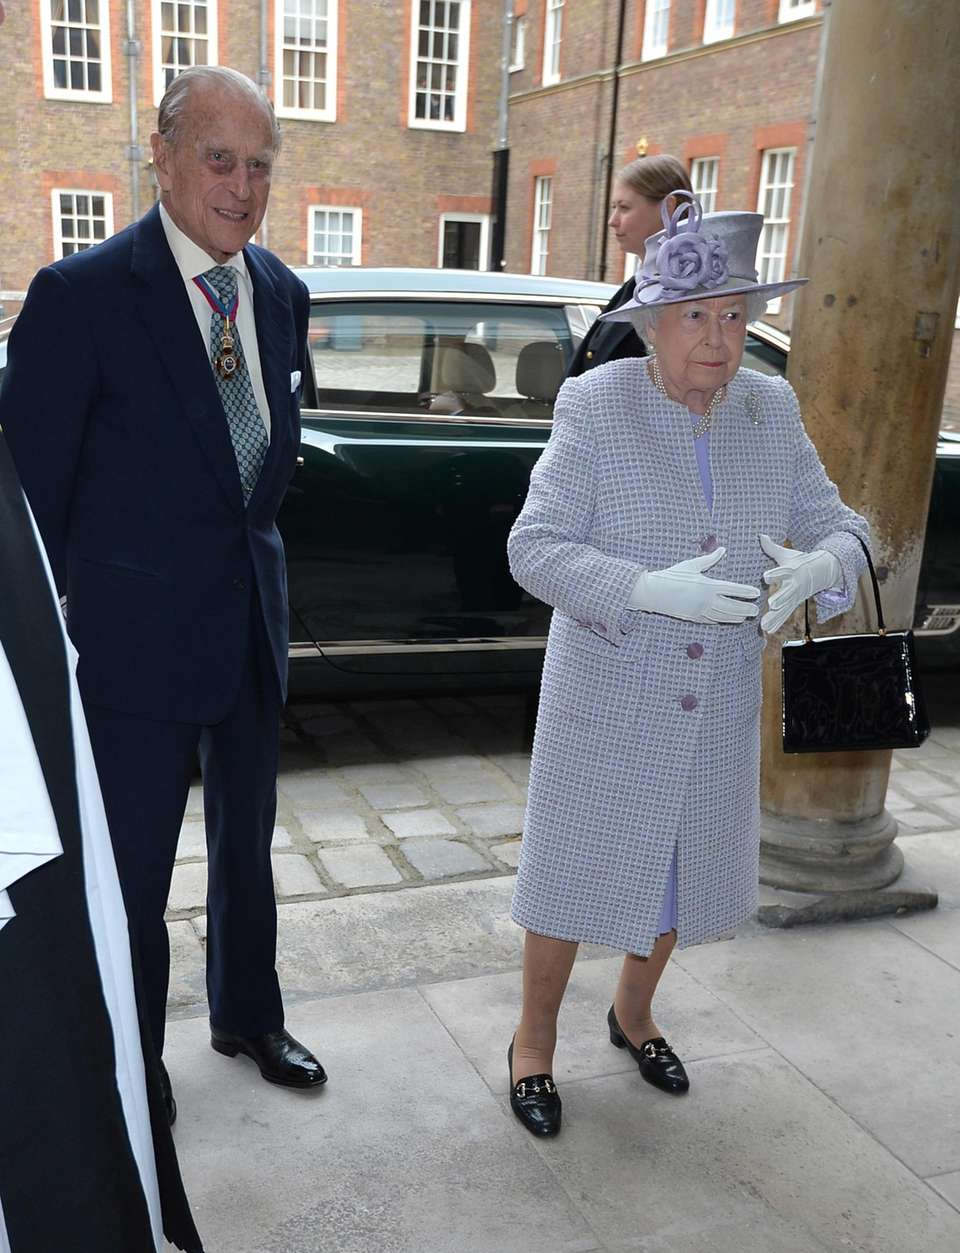 Prince Philip, the Duke of Edinburgh, and Queen